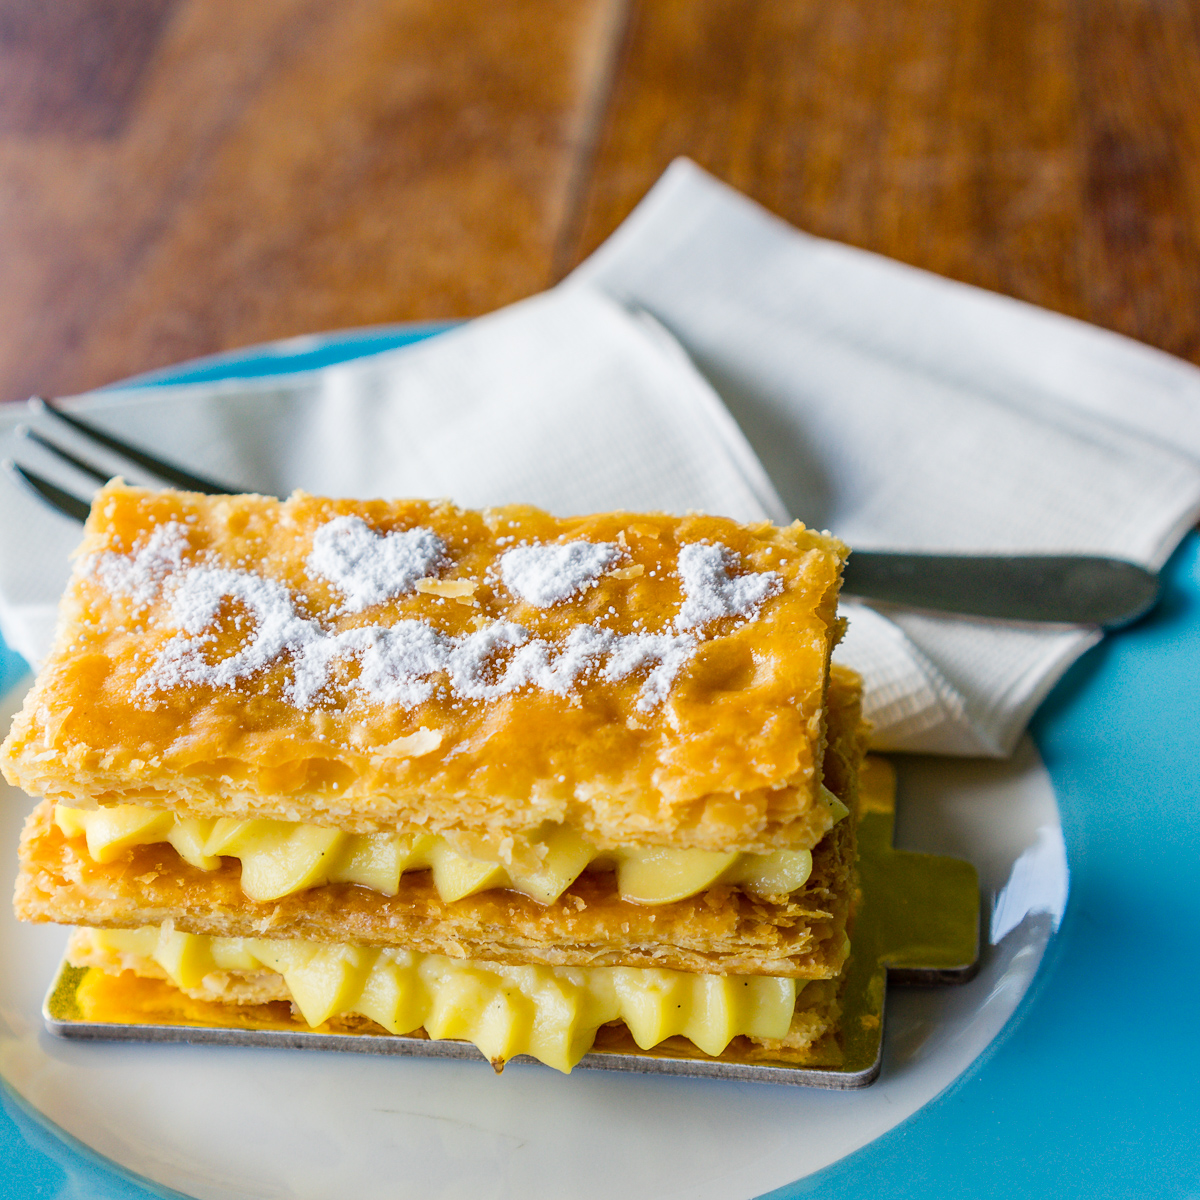 This is a photograph of Dream Cuisine Vanilla Slice